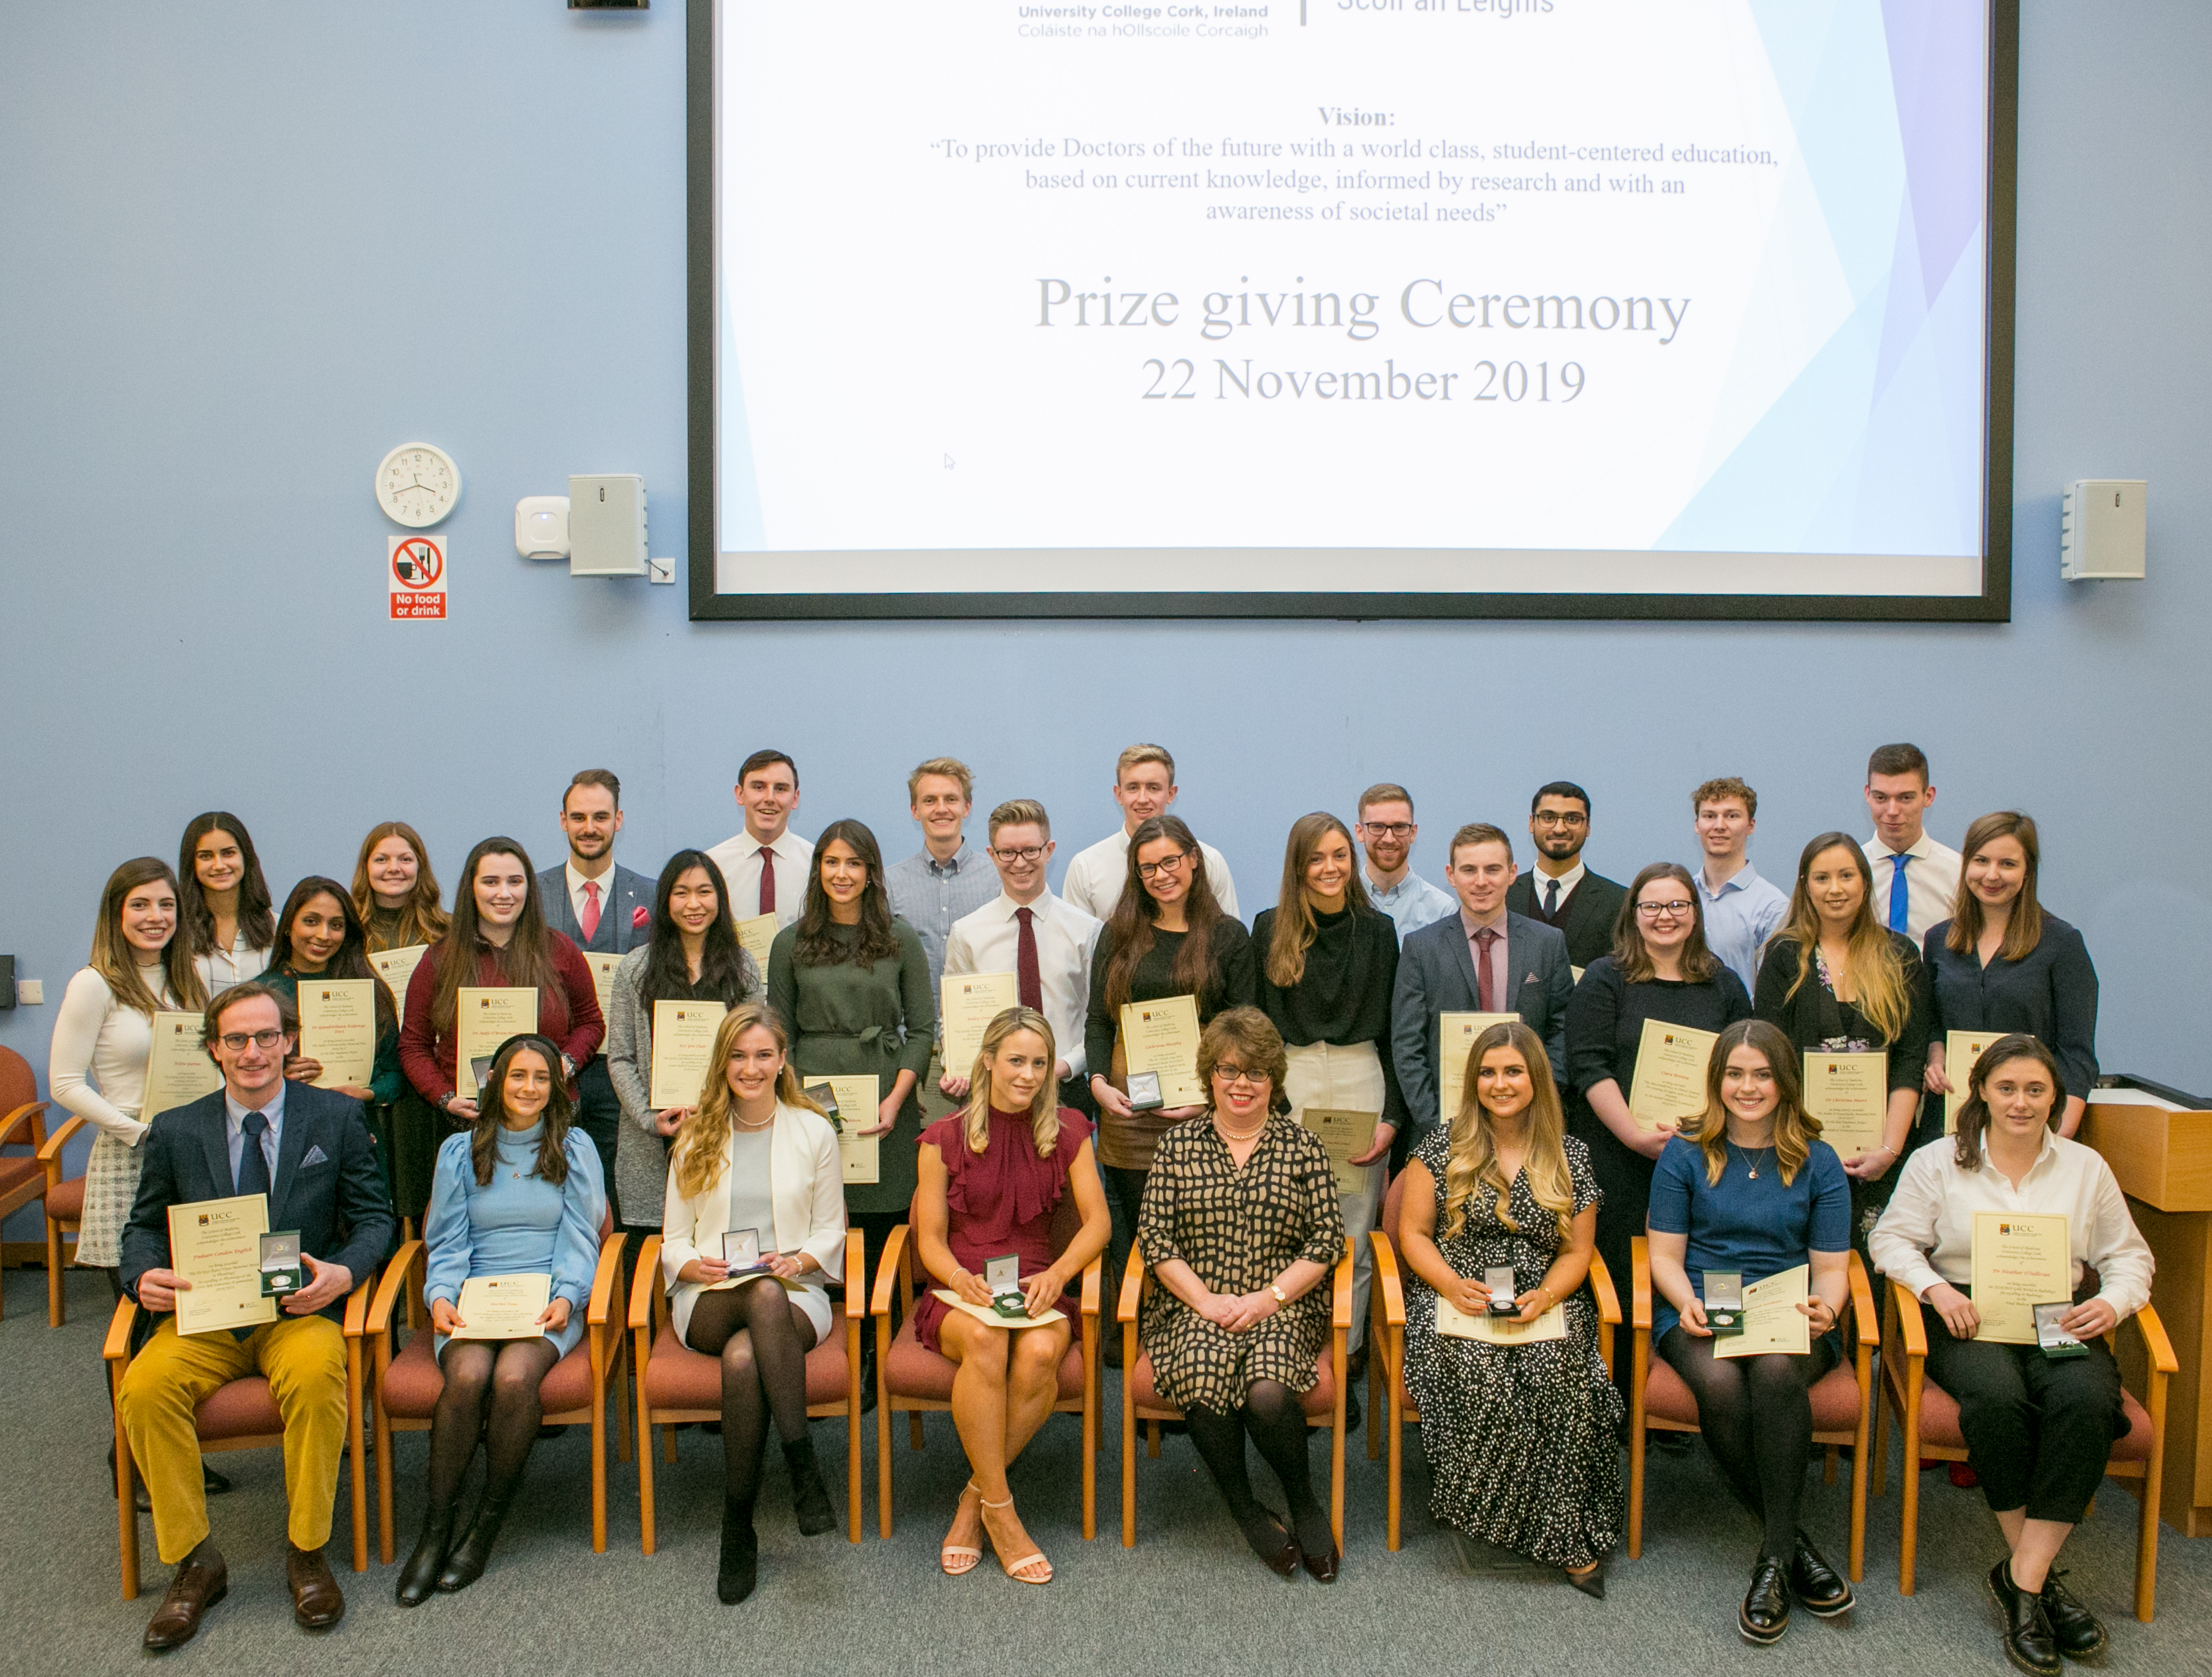 School of Medicine, Prize-Giving Ceremony 2019